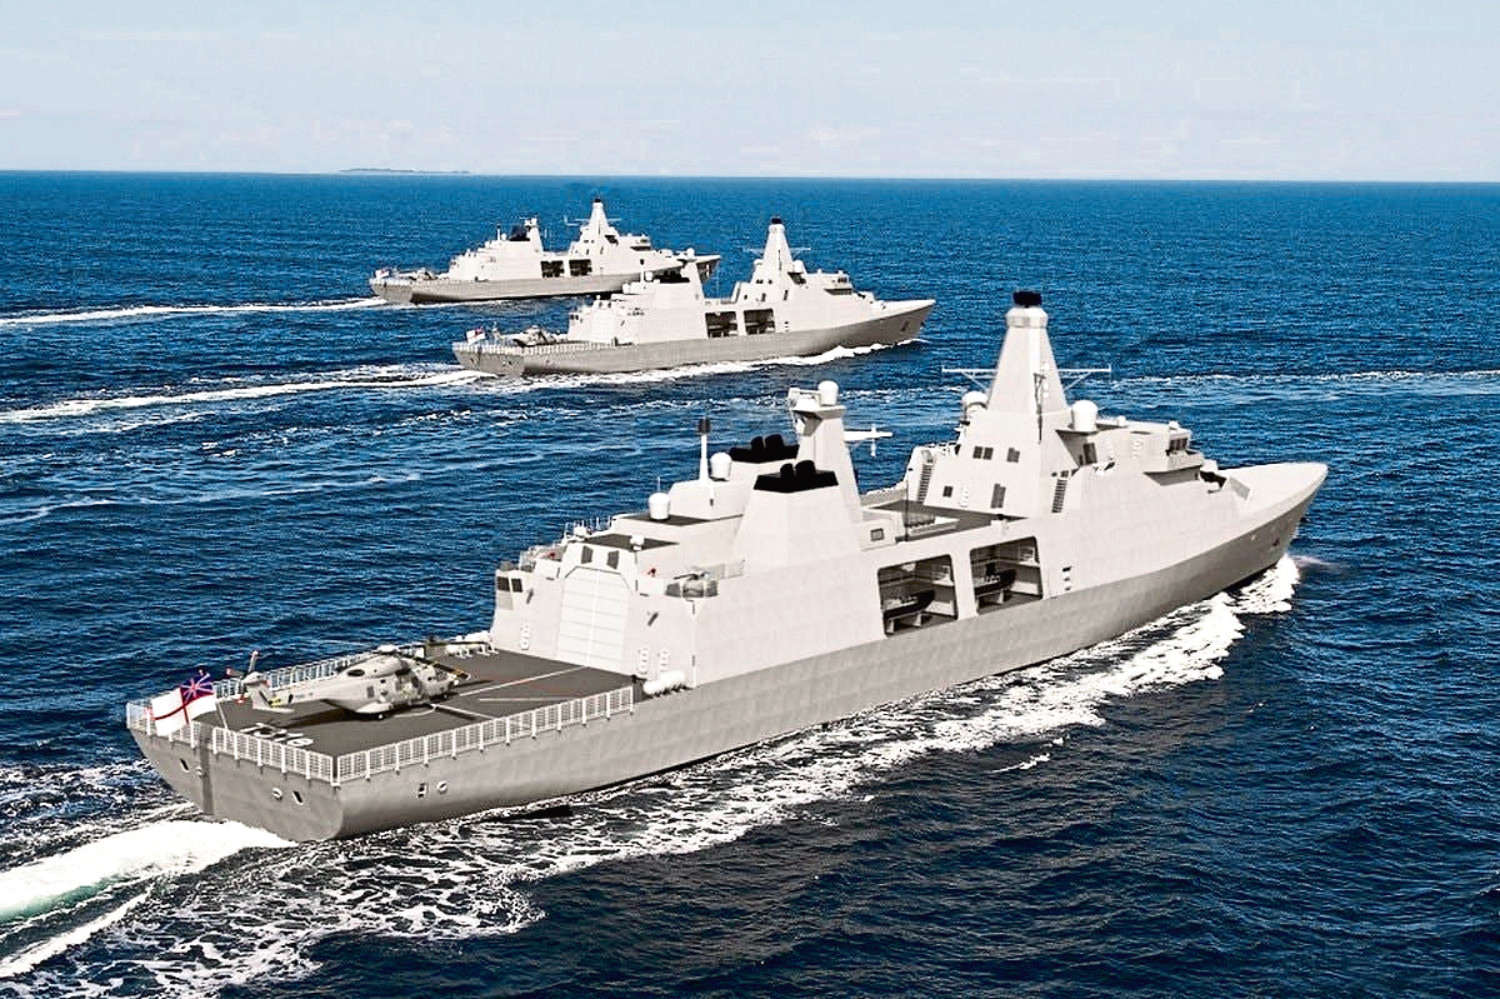 An artists impression of the Arrowhead 140 warship. Engineering giant Babcock has been named the preferred bidder for the £1.3 billion contract to build a new fleet of Royal Navy frigates.